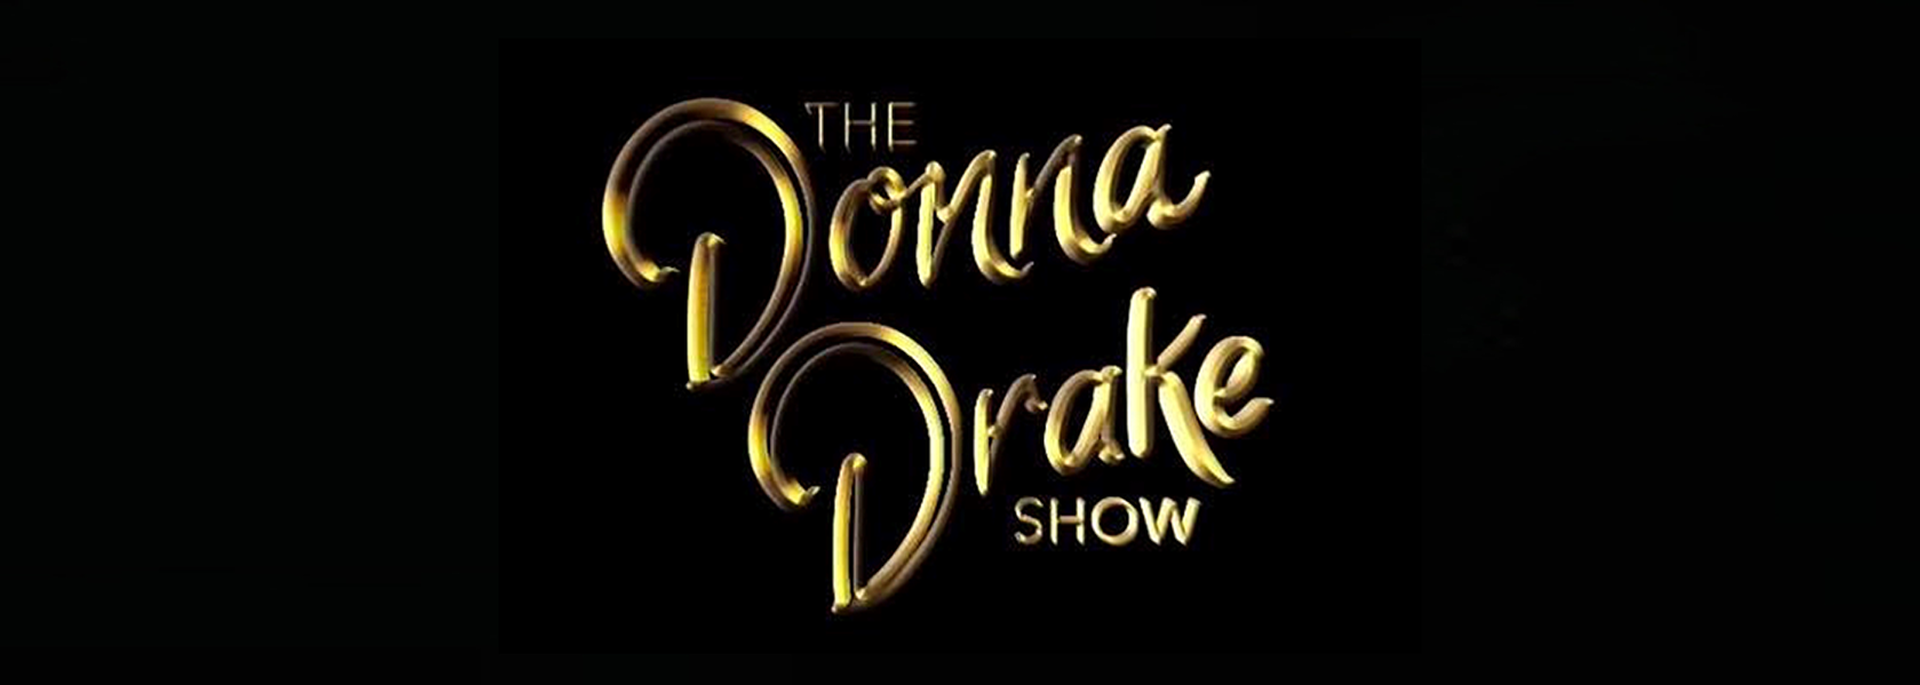 The DONNA DRAKE Show Live It Up! channel